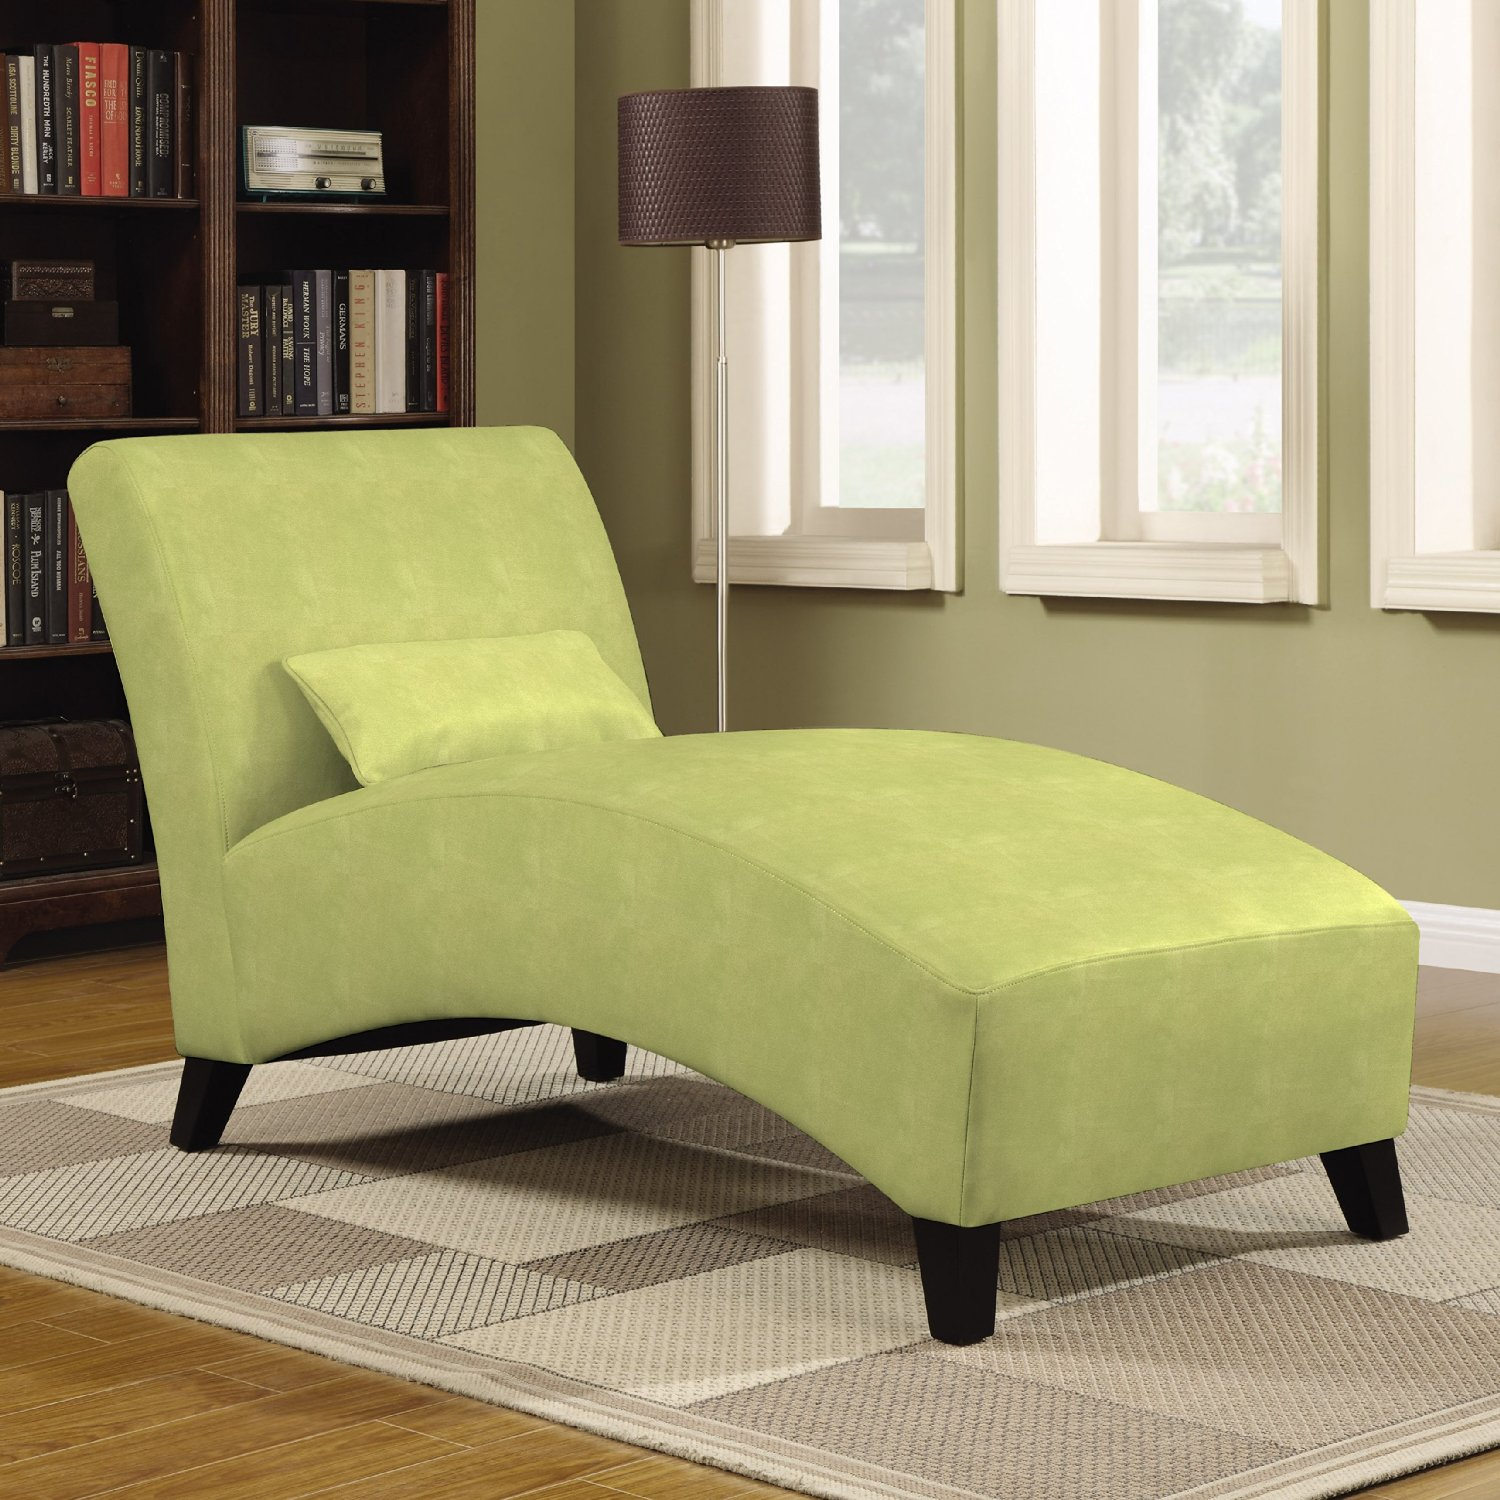 chaise lounge for bedroom upholstered chaise lounges for bedrooms 14726